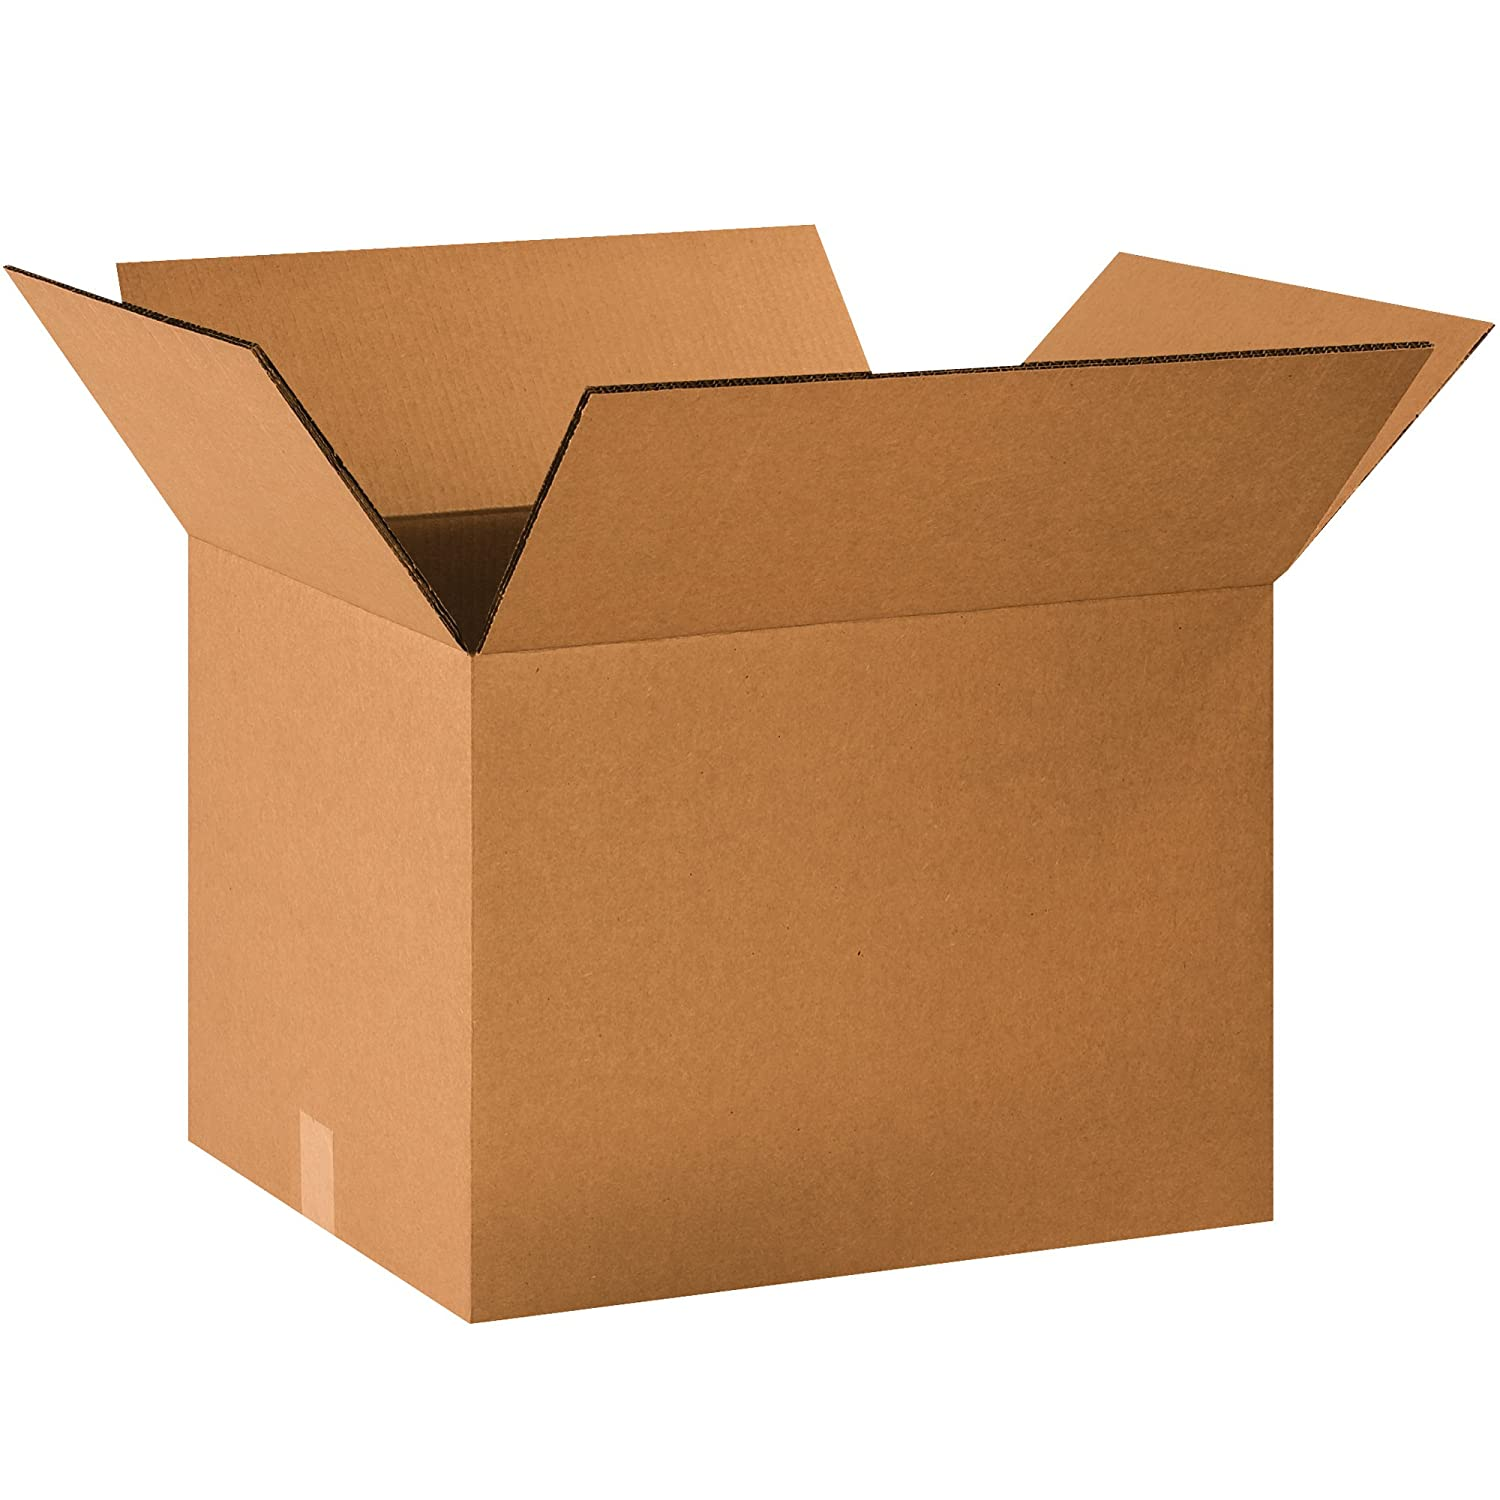 Heavy Duty Cardboard Boxes Image